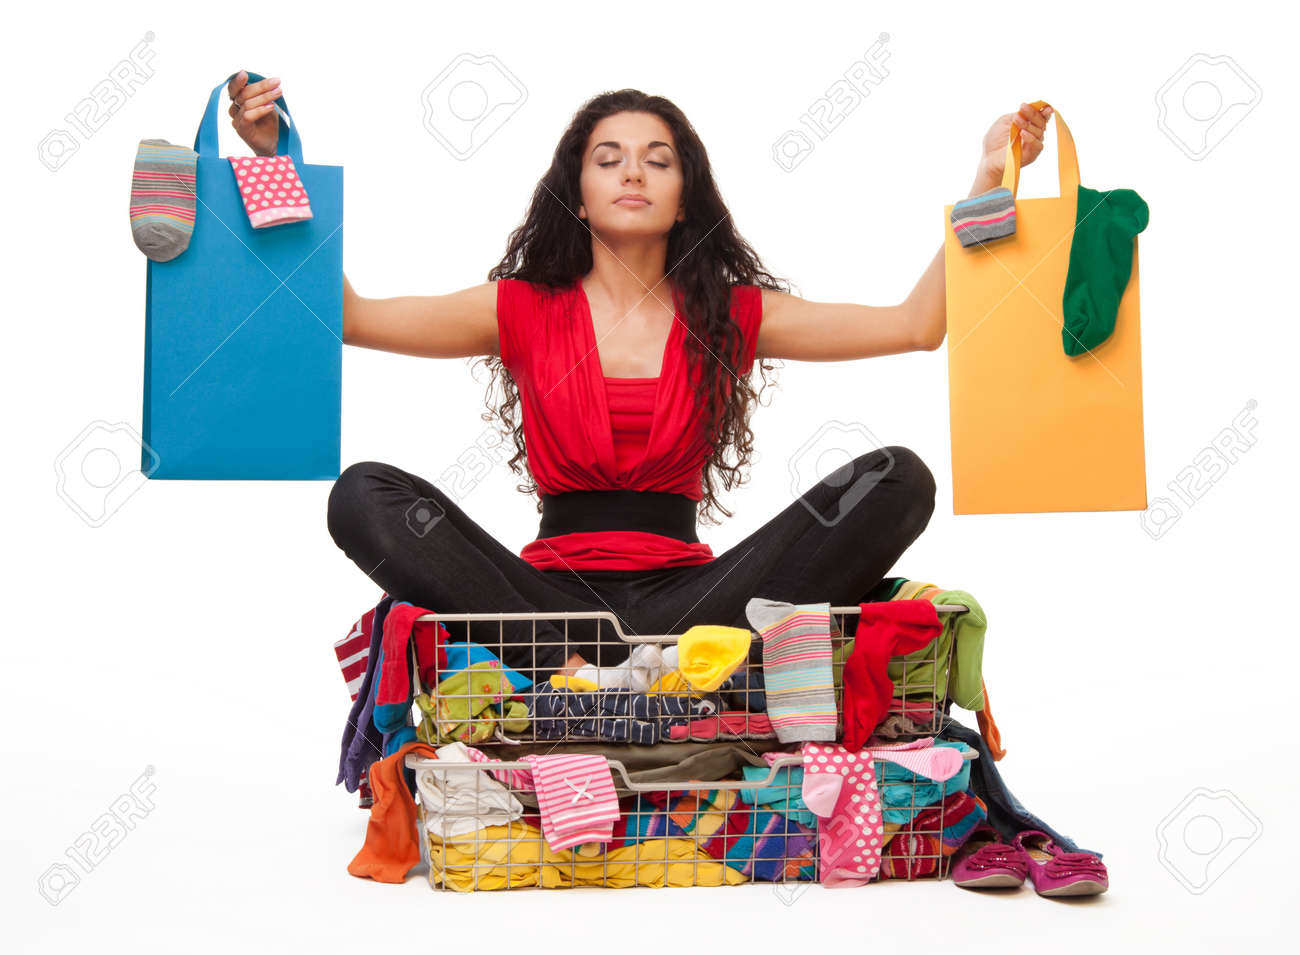 Woman Holding Shopping Bags And Sitting In Clothes Basket With ...